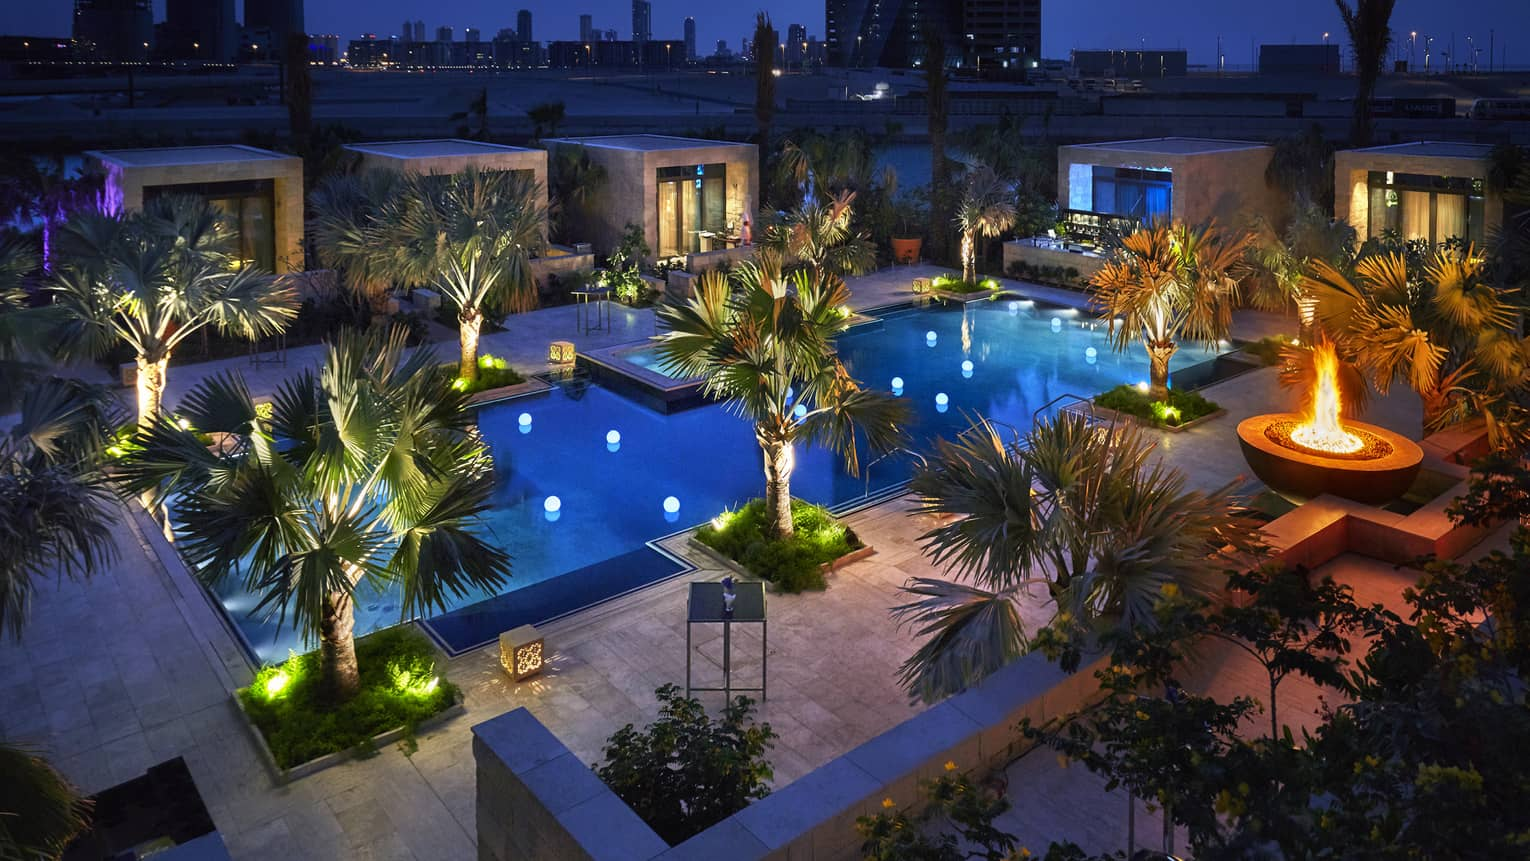 Aerial view of swimming pool, palm trees at night with lights, patio with large outdoor fireplace